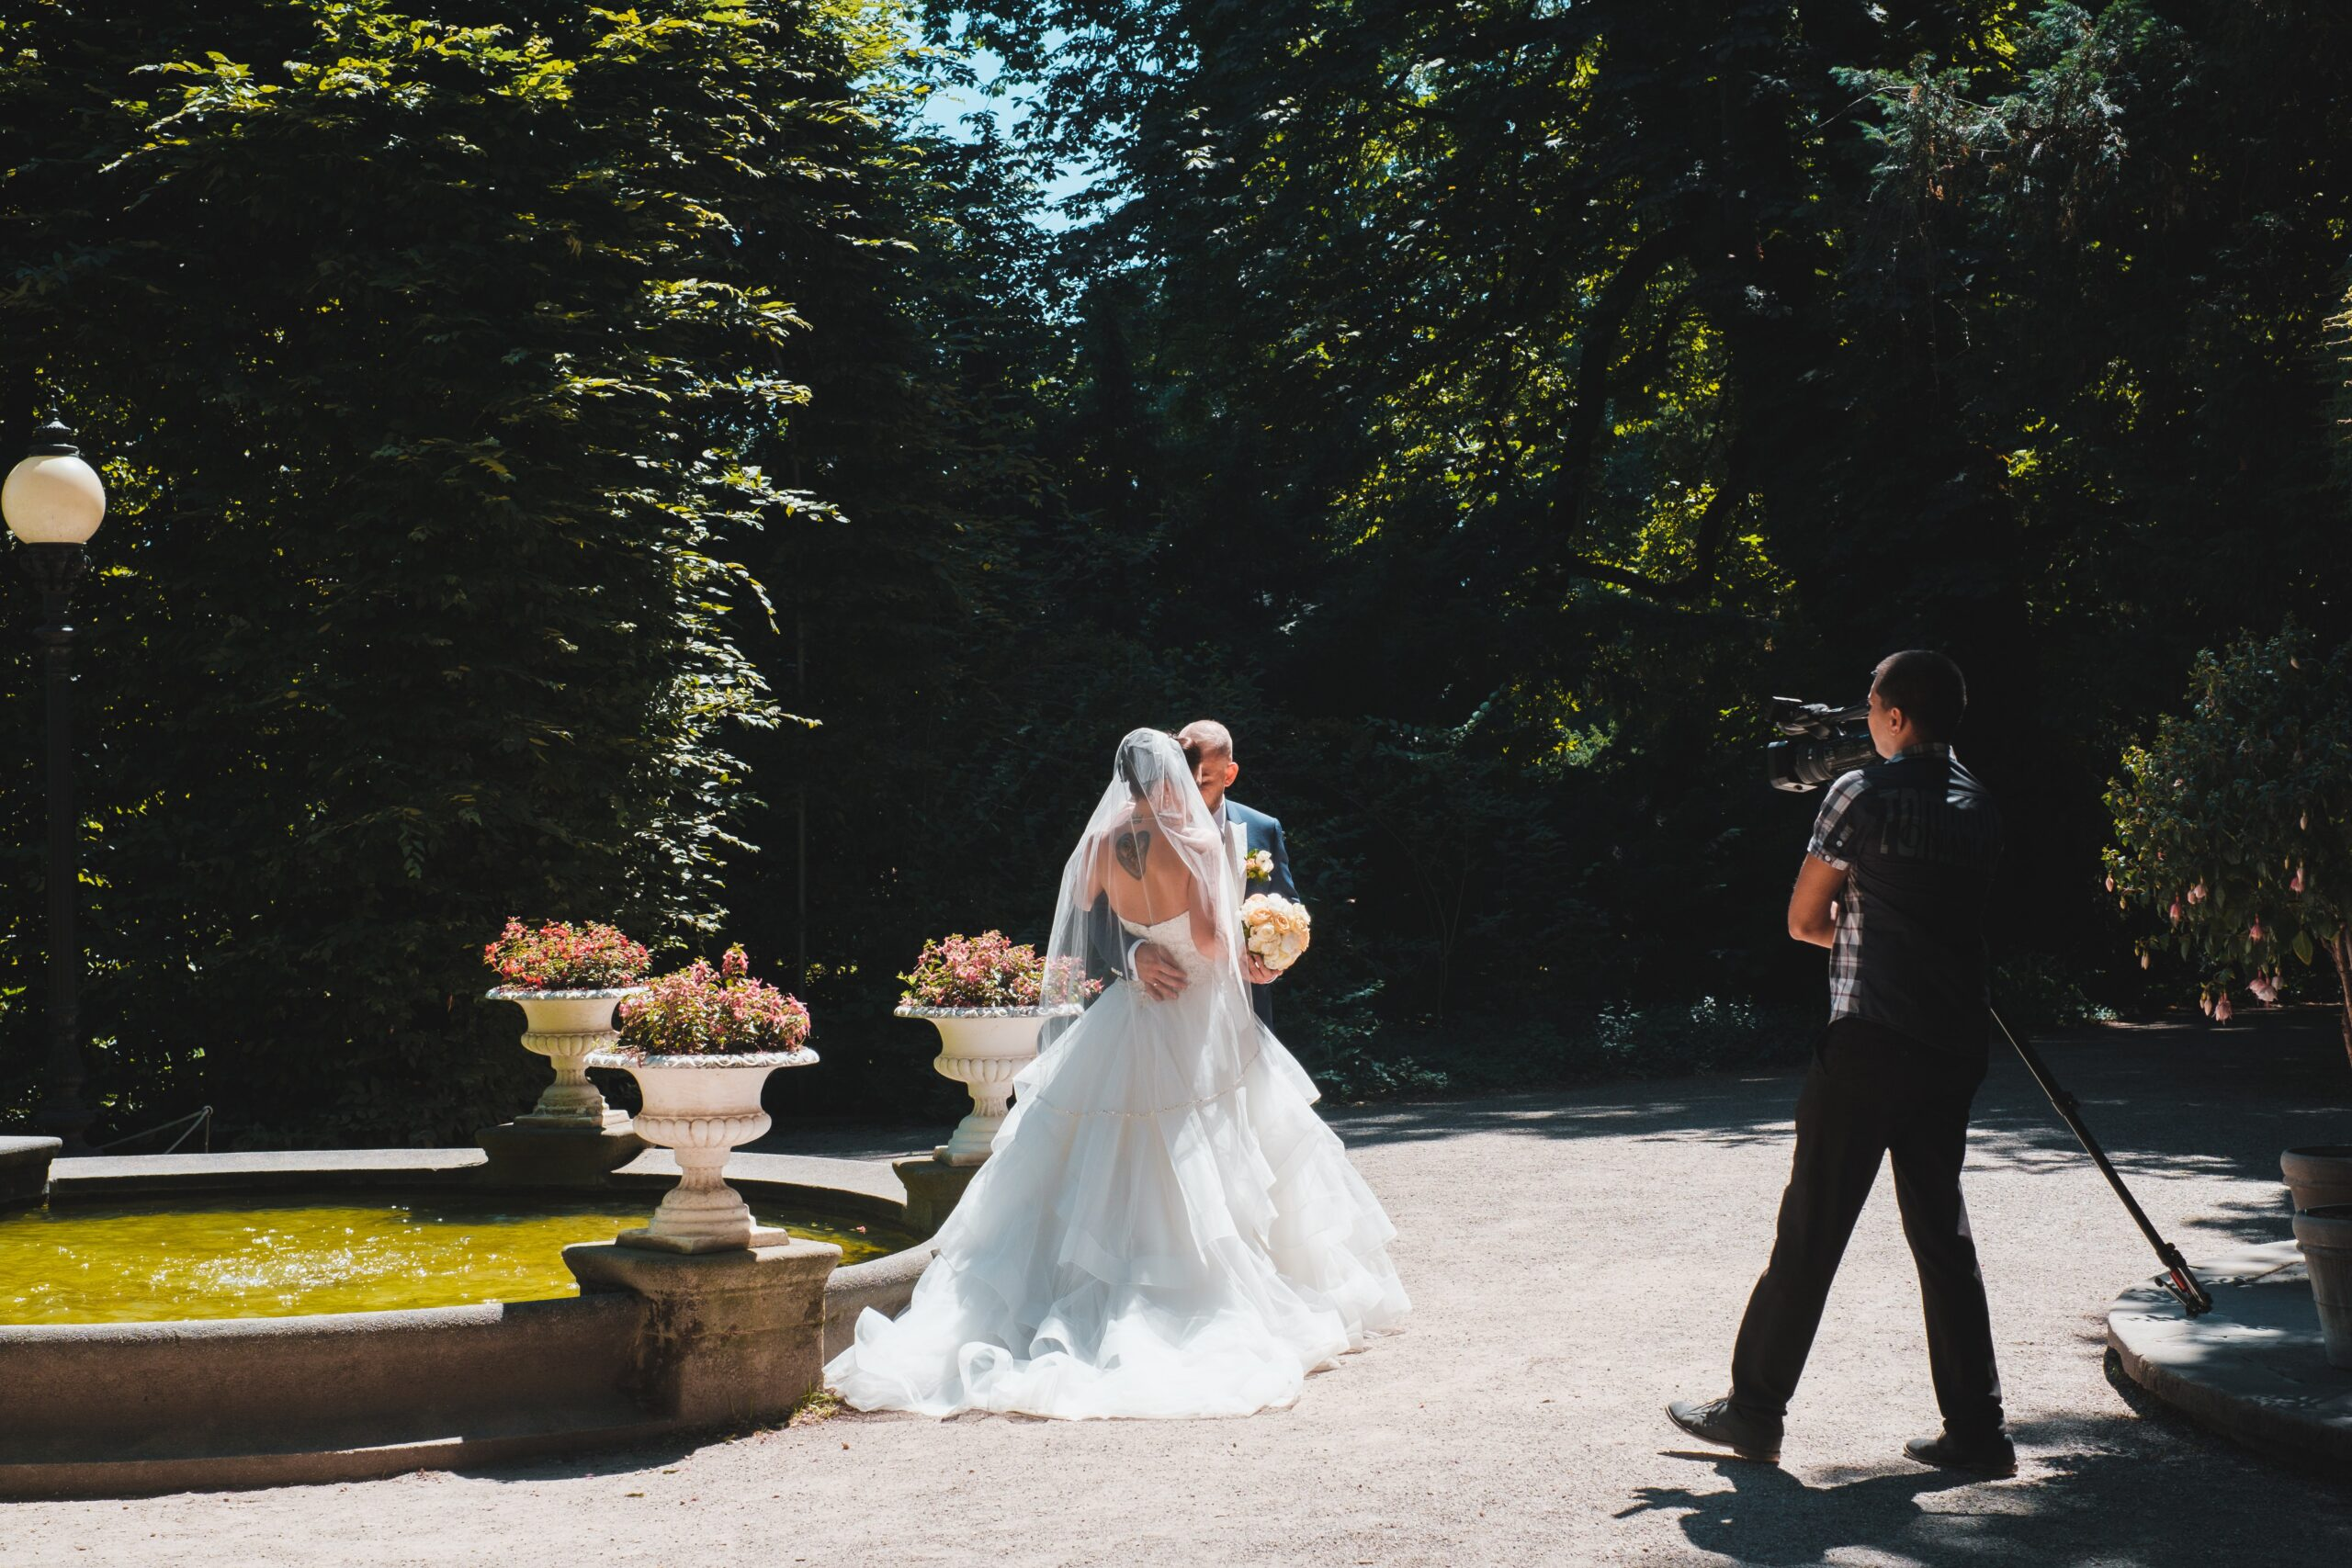 wedding video music top tips how to find the perfect music